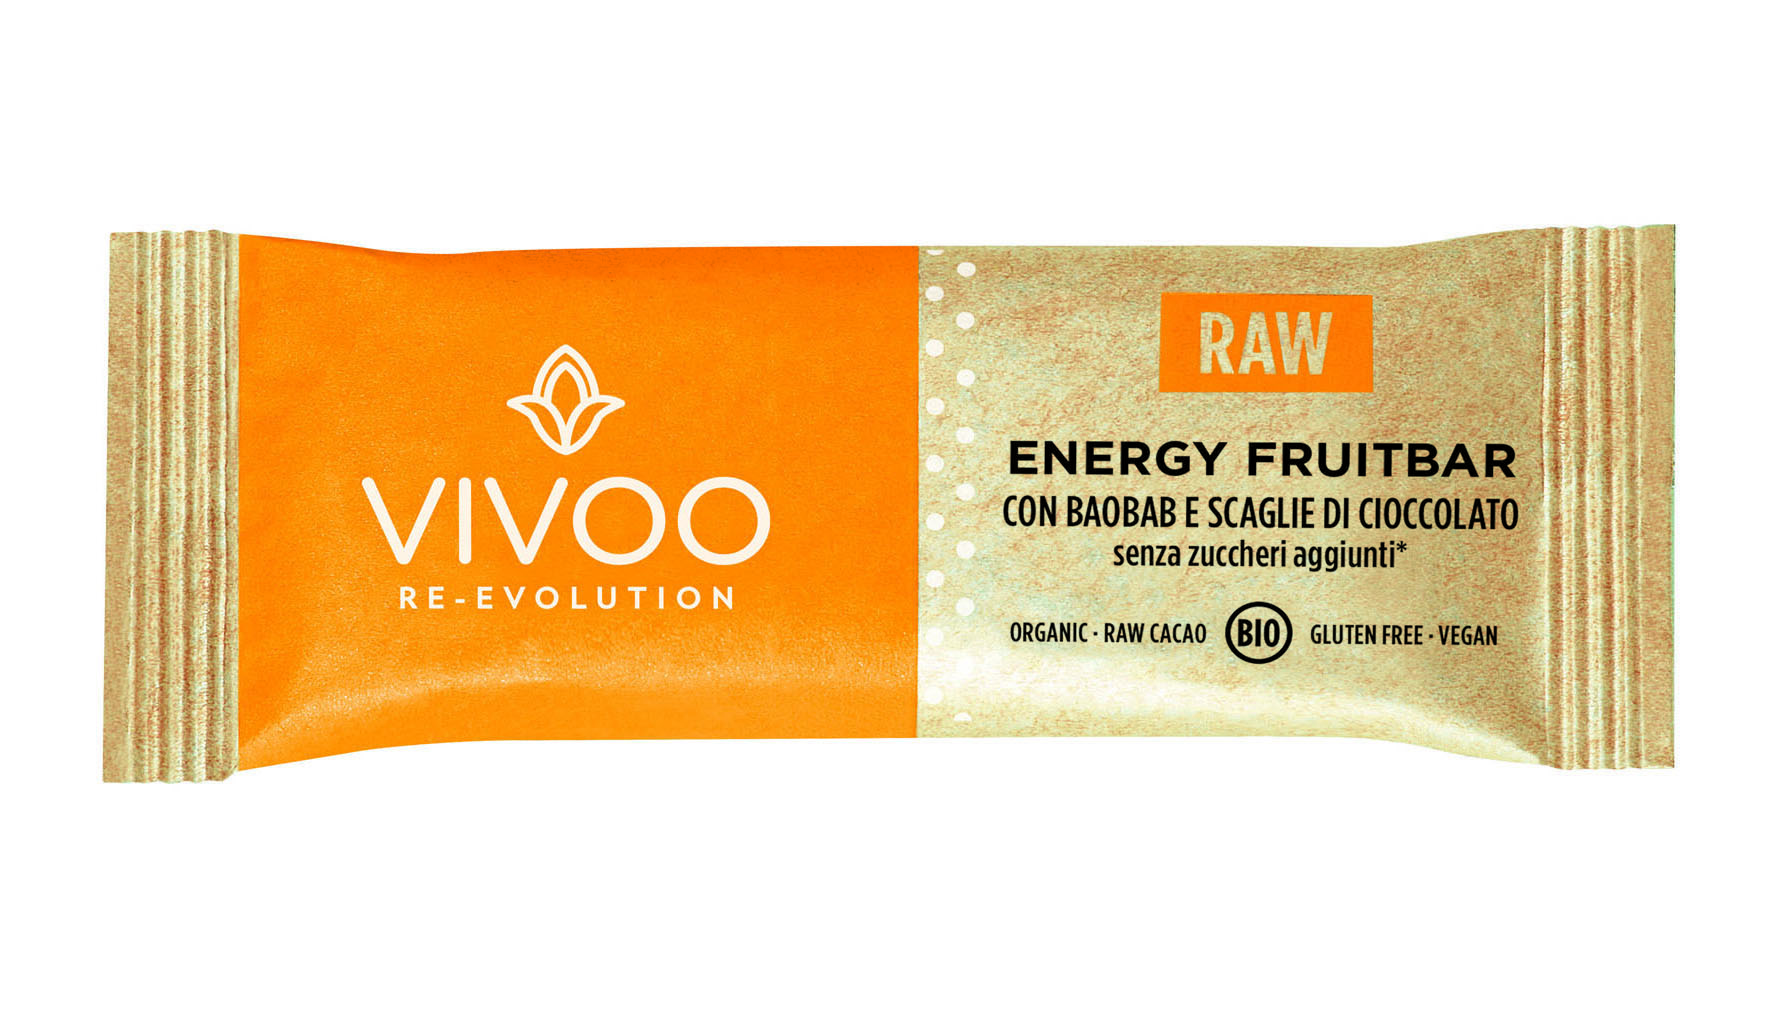 Energy Fruitbar